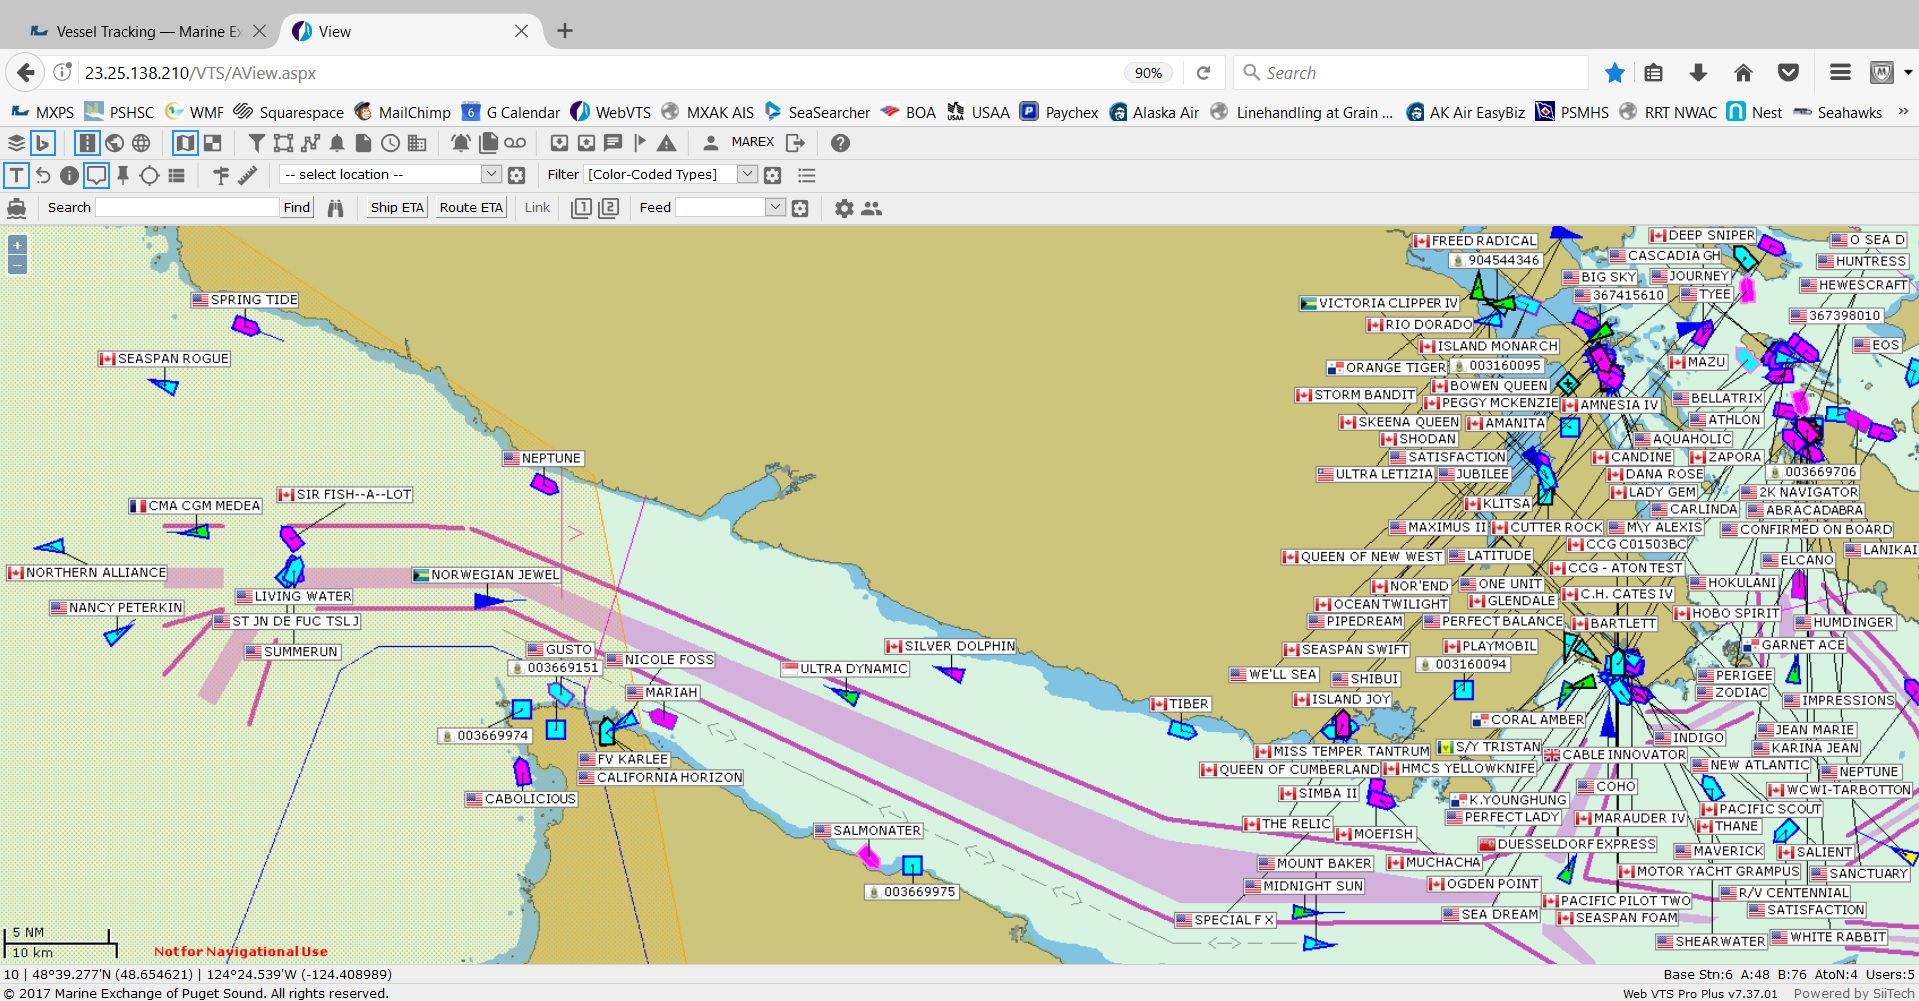 Vessel Tracking -